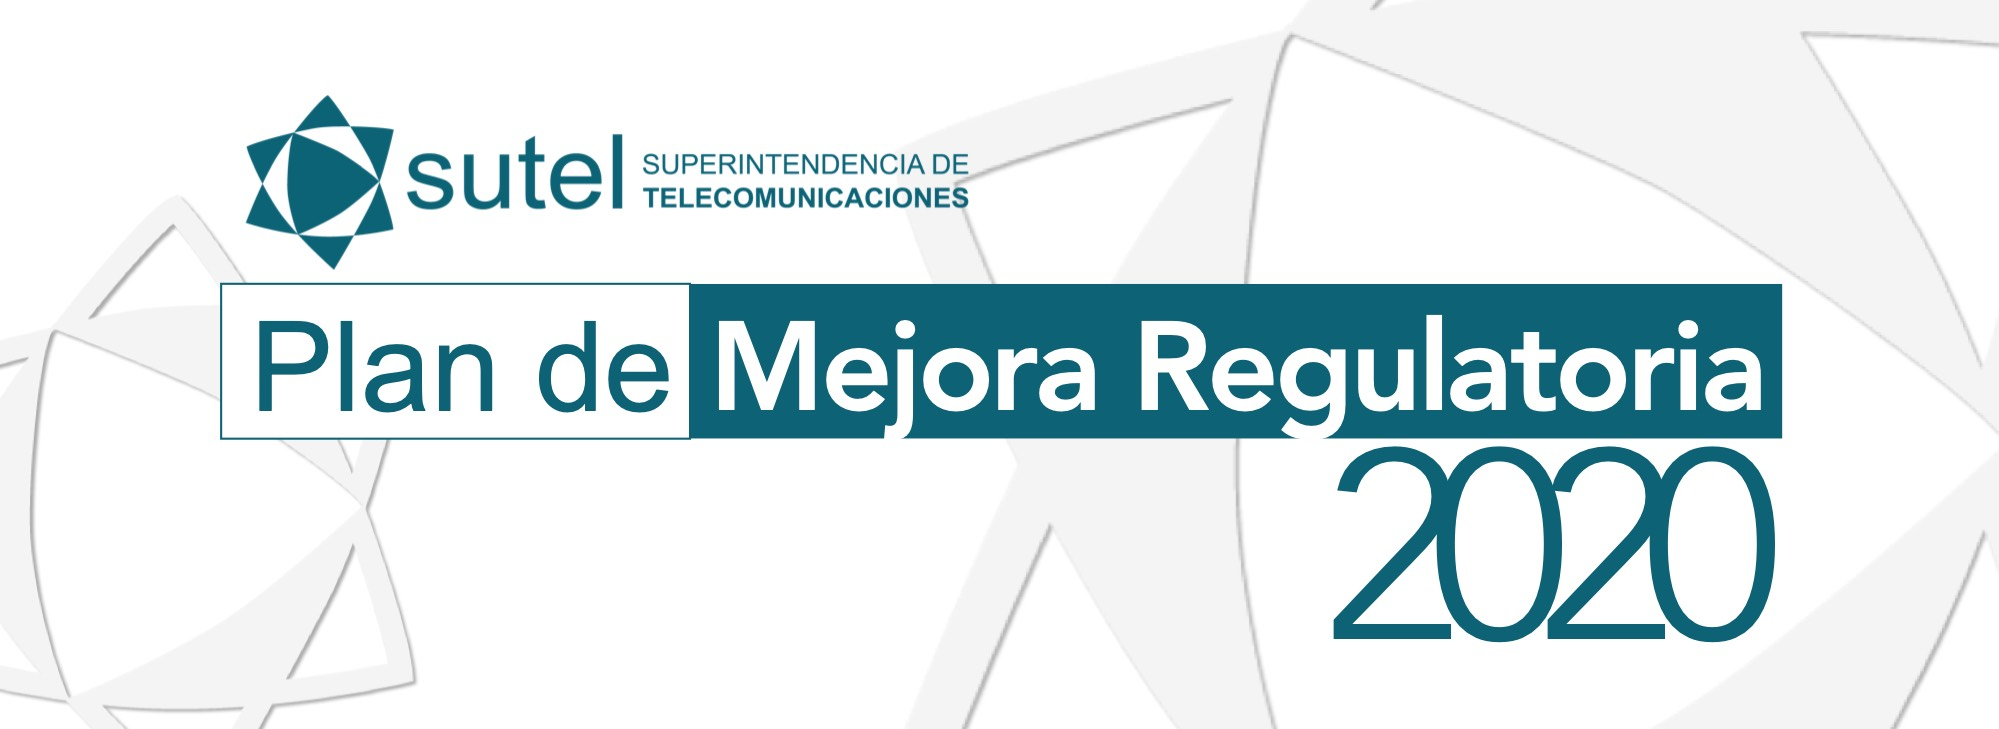 Plan de Mejora Regulatoria 2020